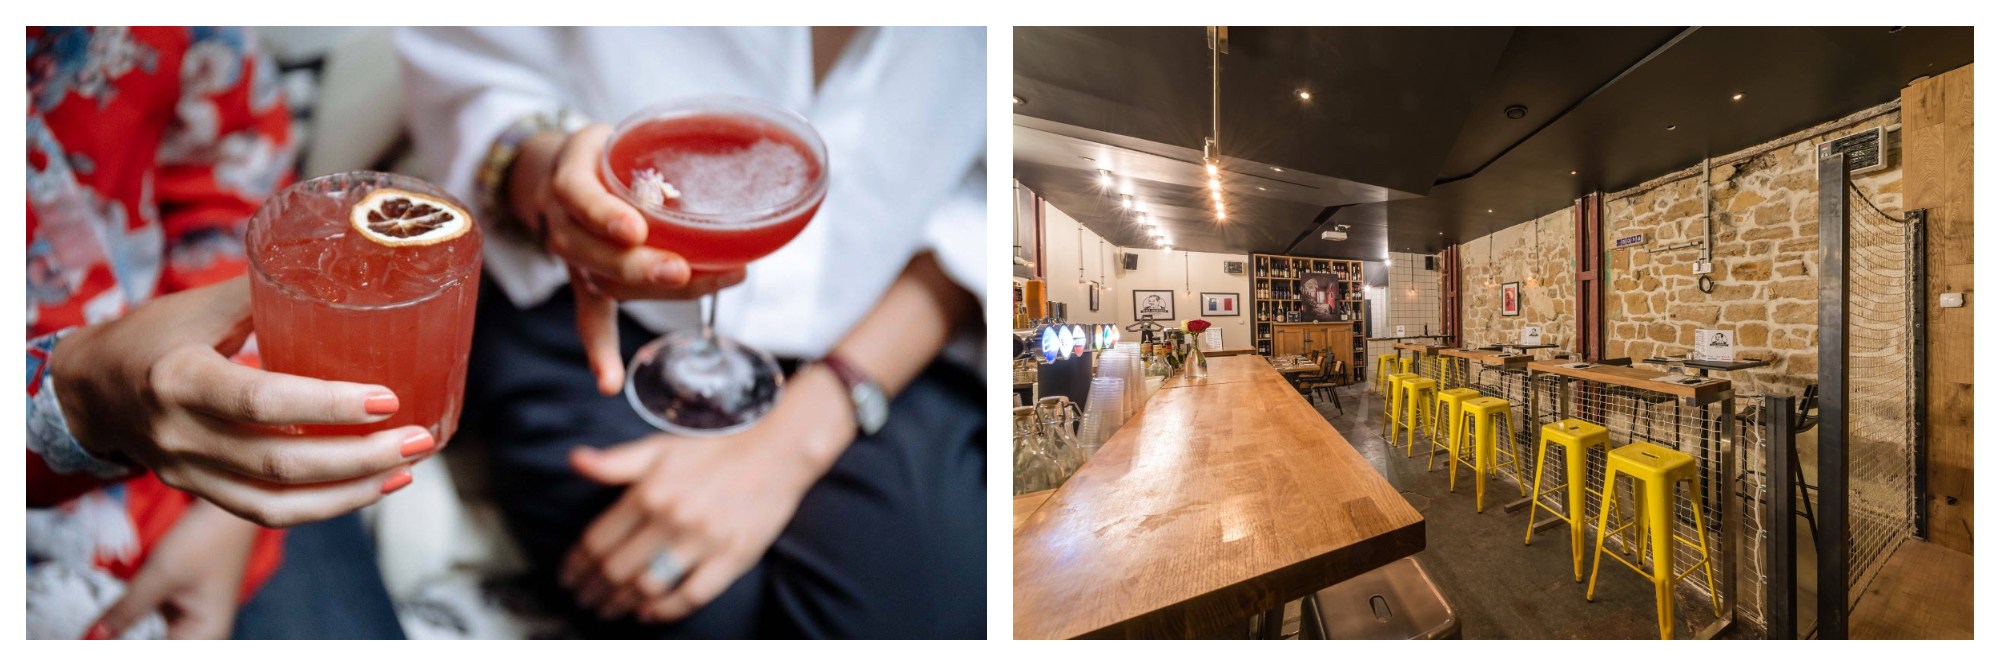 On left: Two friends hold bright cocktails from the bar Le Très Particulier in Montmartre, one a bright red and the other a soft grapefruit pink, garnished with a slice of blood orange. On right: The bar at Chez Bouboule in Paris' Pigalle neighborhood welcomes patrons to hop in for a drink and a game of pétanque, a classic summer pastime.